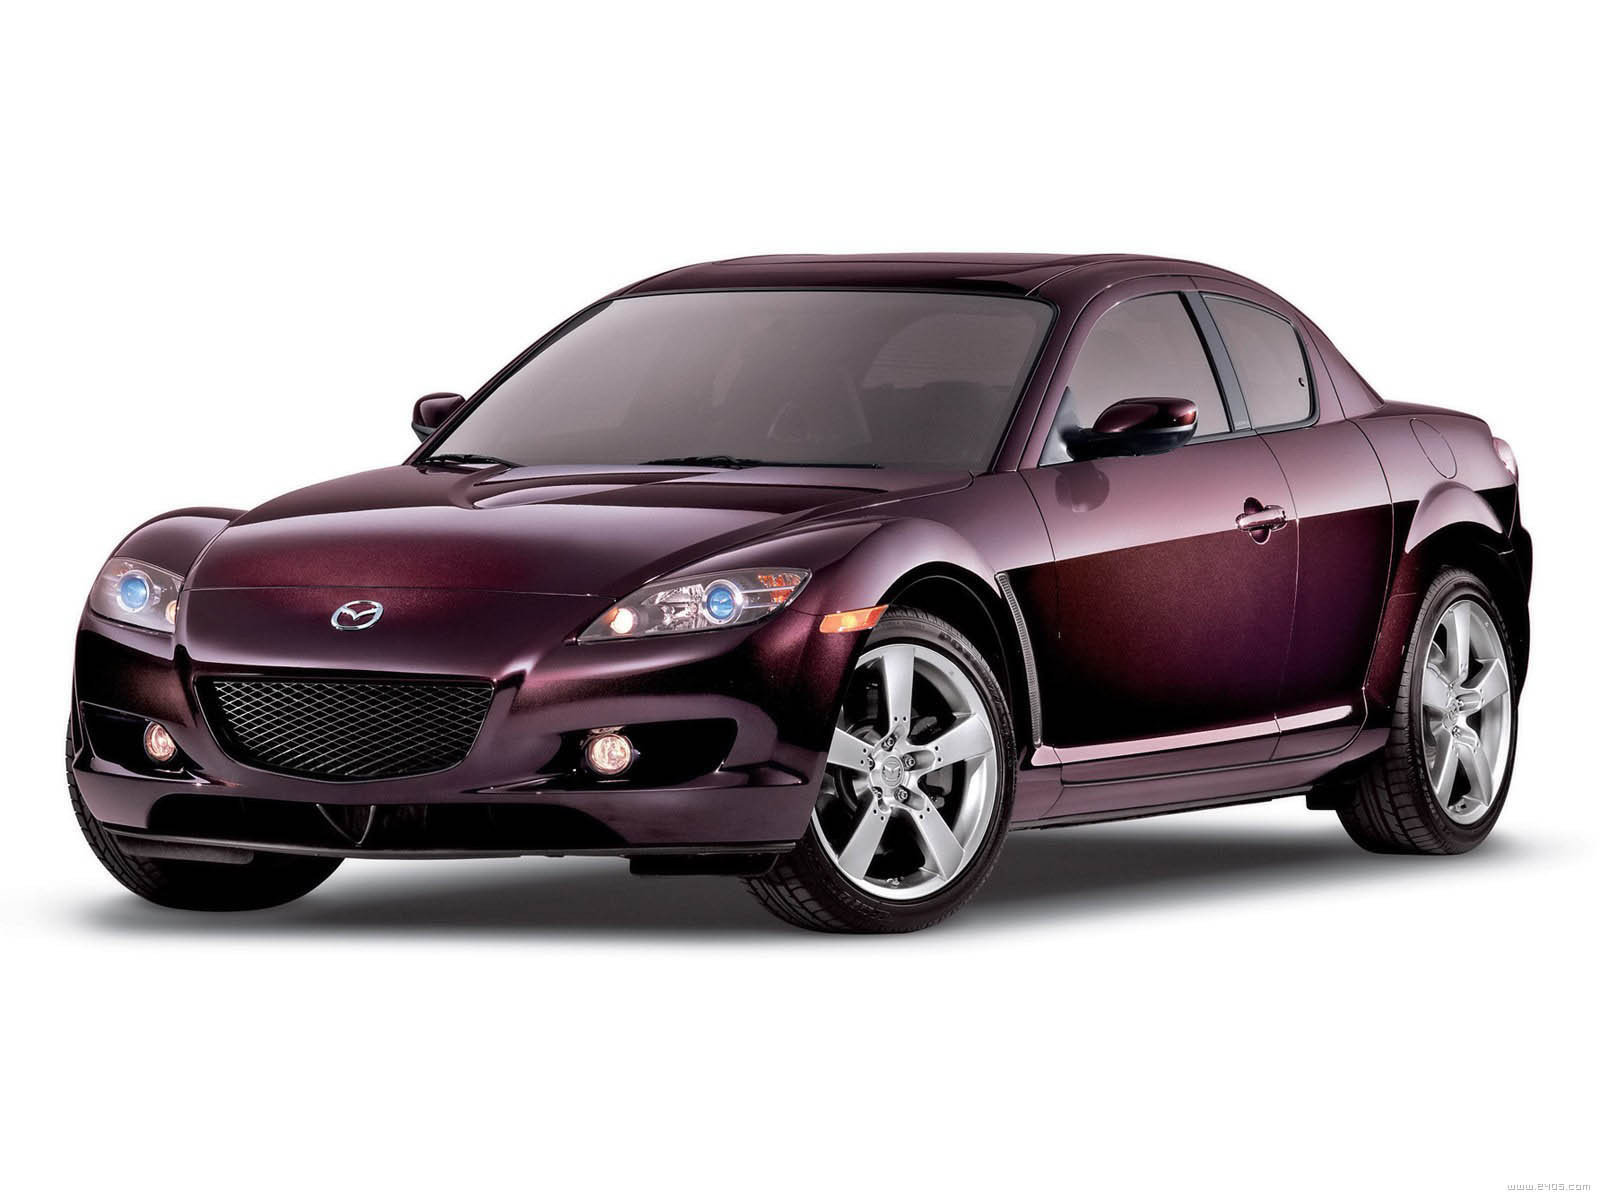 2005 mazda rx 8 shinka review top speed. Black Bedroom Furniture Sets. Home Design Ideas